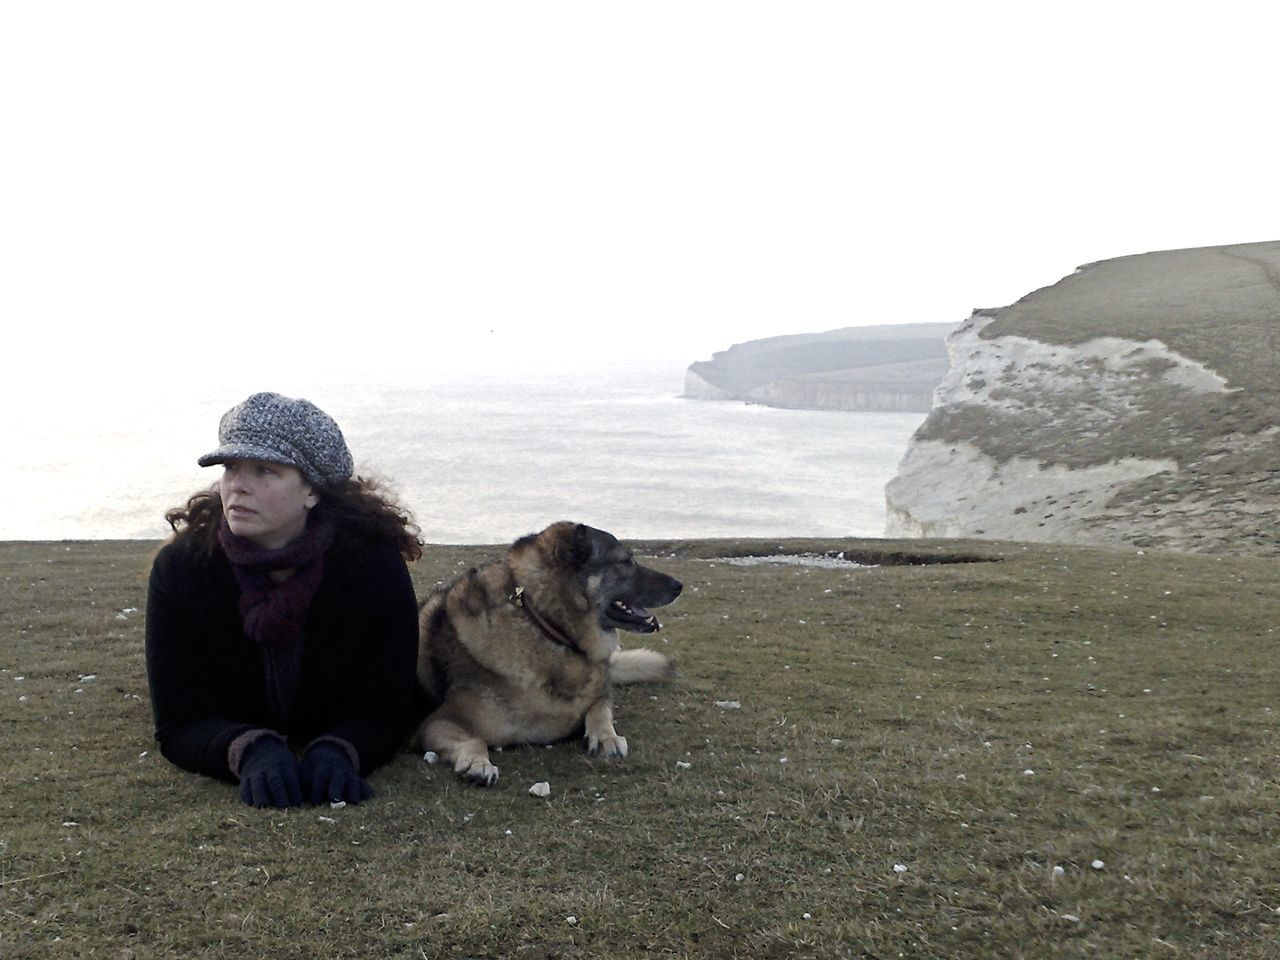 A Hard Day's Walk Animal Themes Beauty In Nature Clear Sky Cliff Day Dog Domestic Animals English Channel Full Length Mammal Nature One Animal One Person Outdoors People Pets Real People Sea Sea And Sky Seven Sisters Seven Sisters Cliffs Sitting Sky Warm Clothing